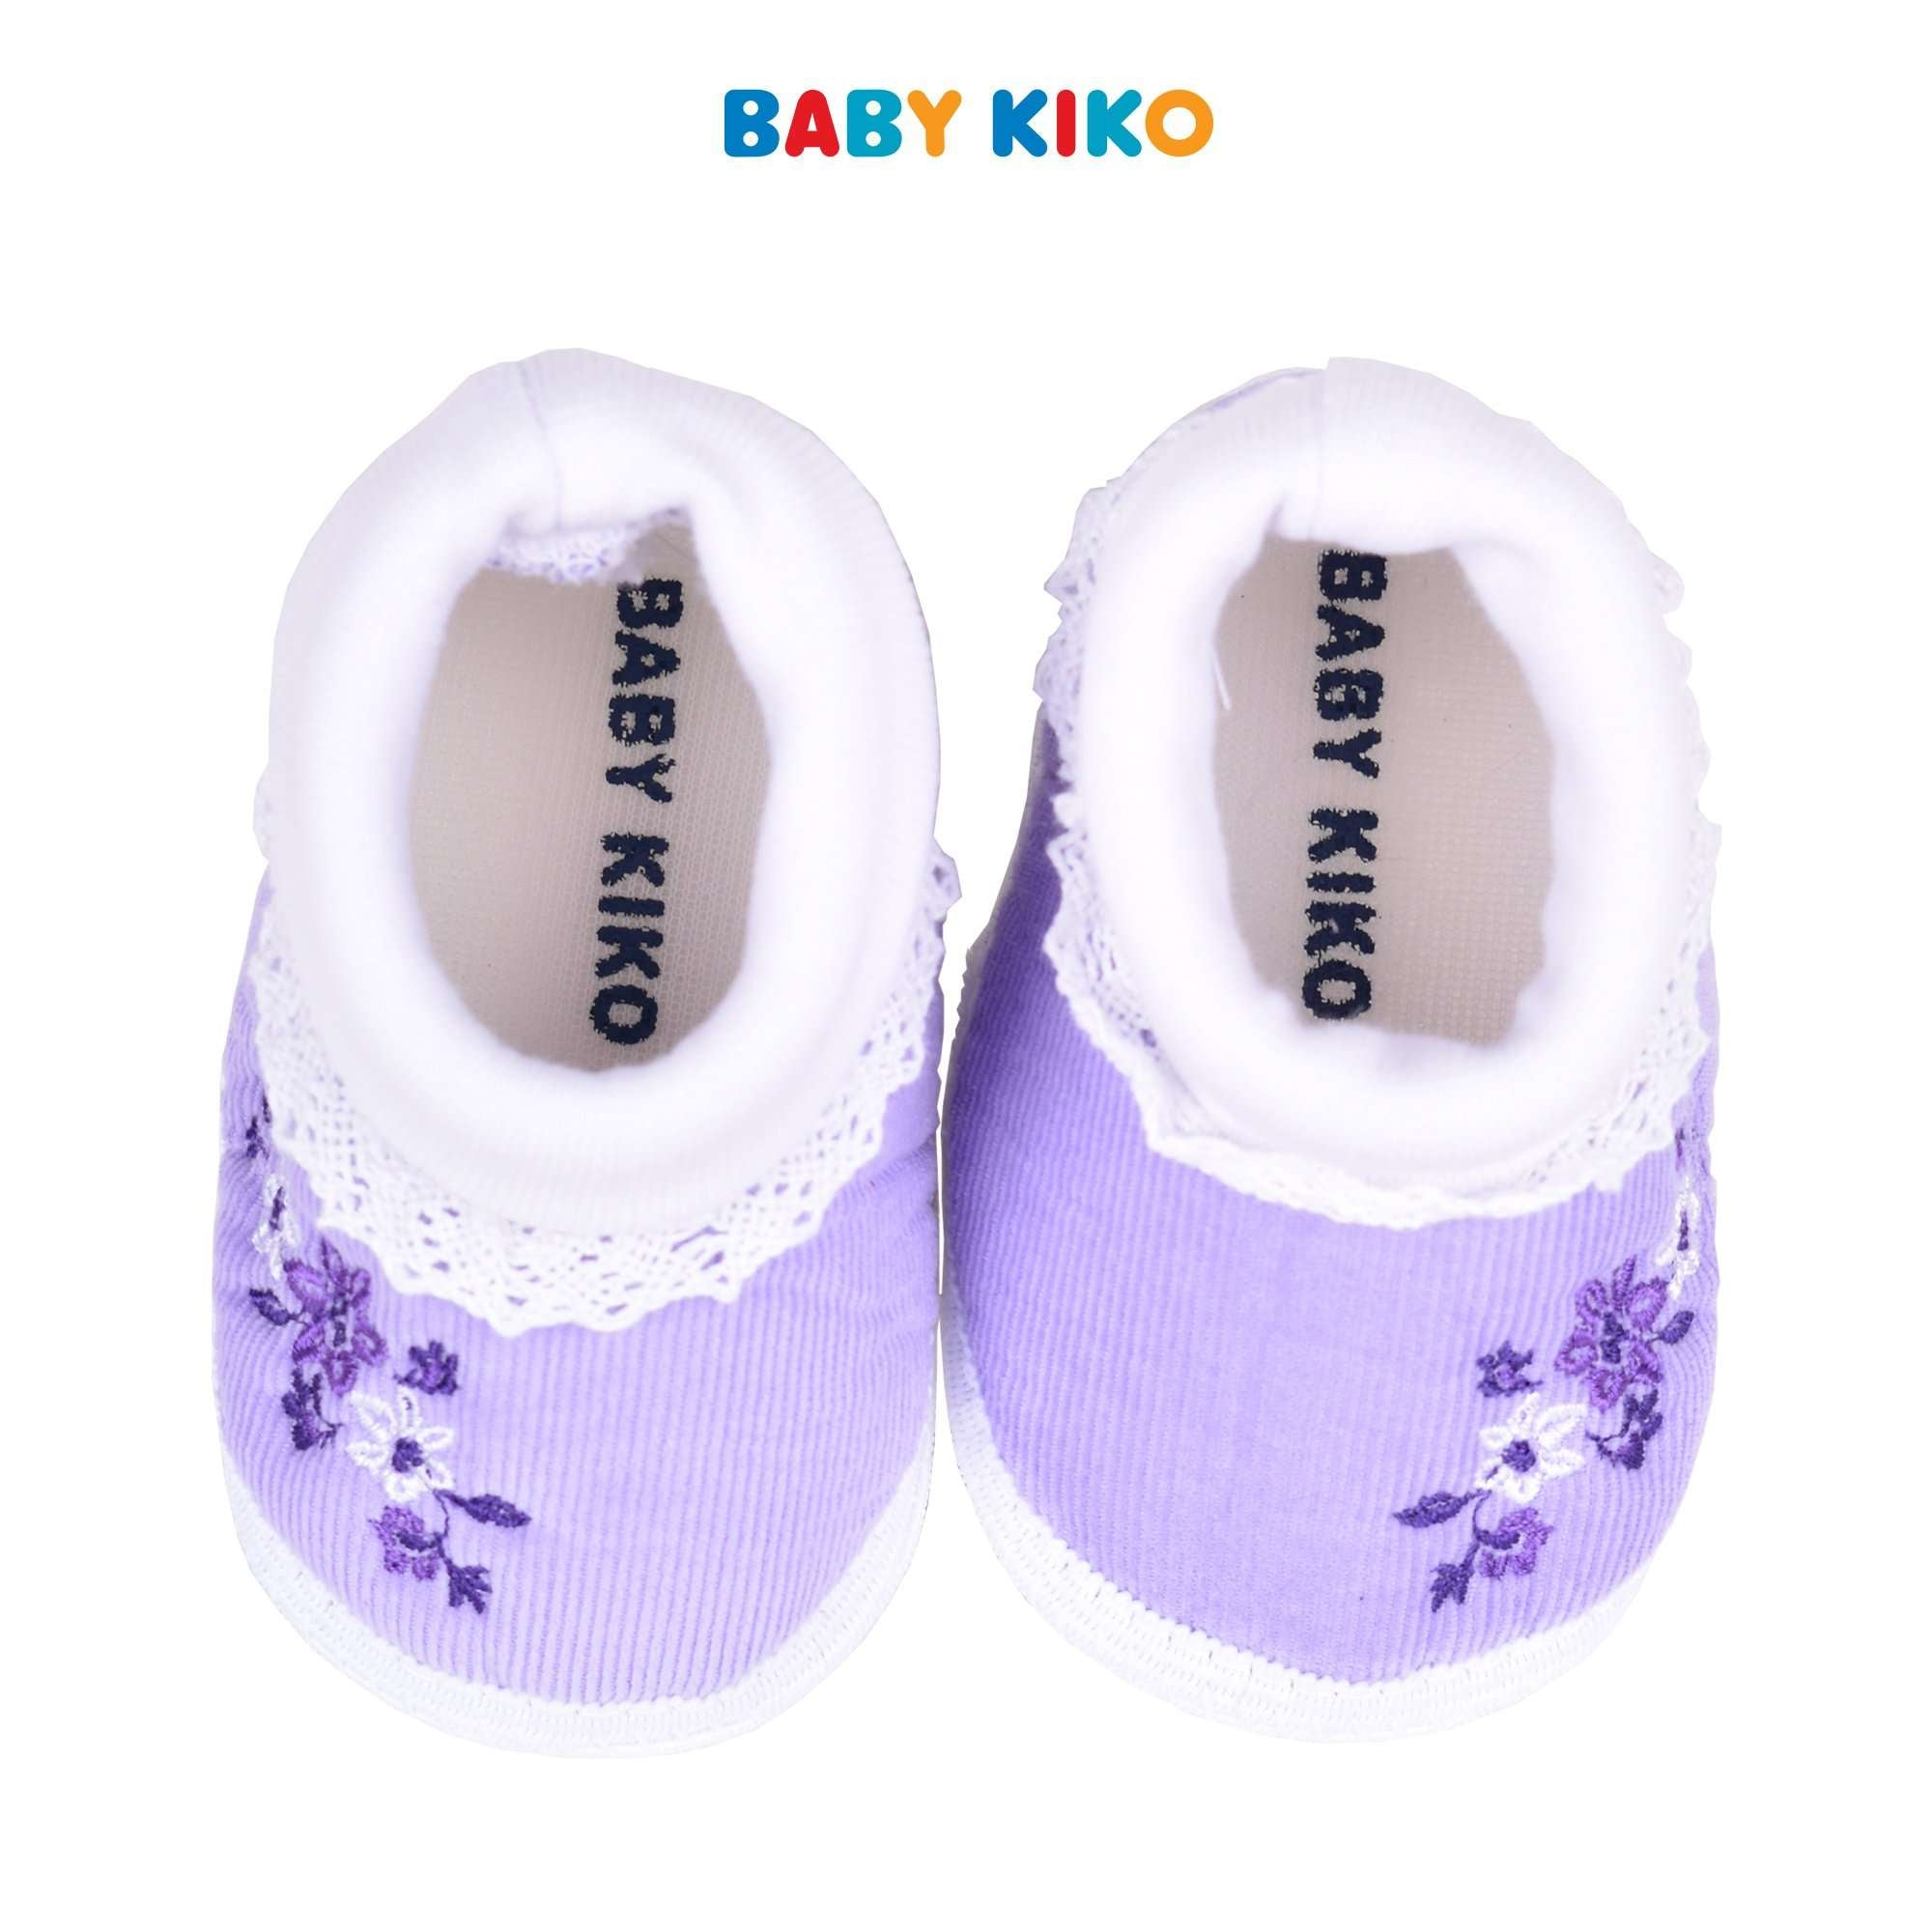 Baby KIKO Baby Girl Textile Shoes - Purple 310169-512 : Buy Baby KIKO online at CMG.MY